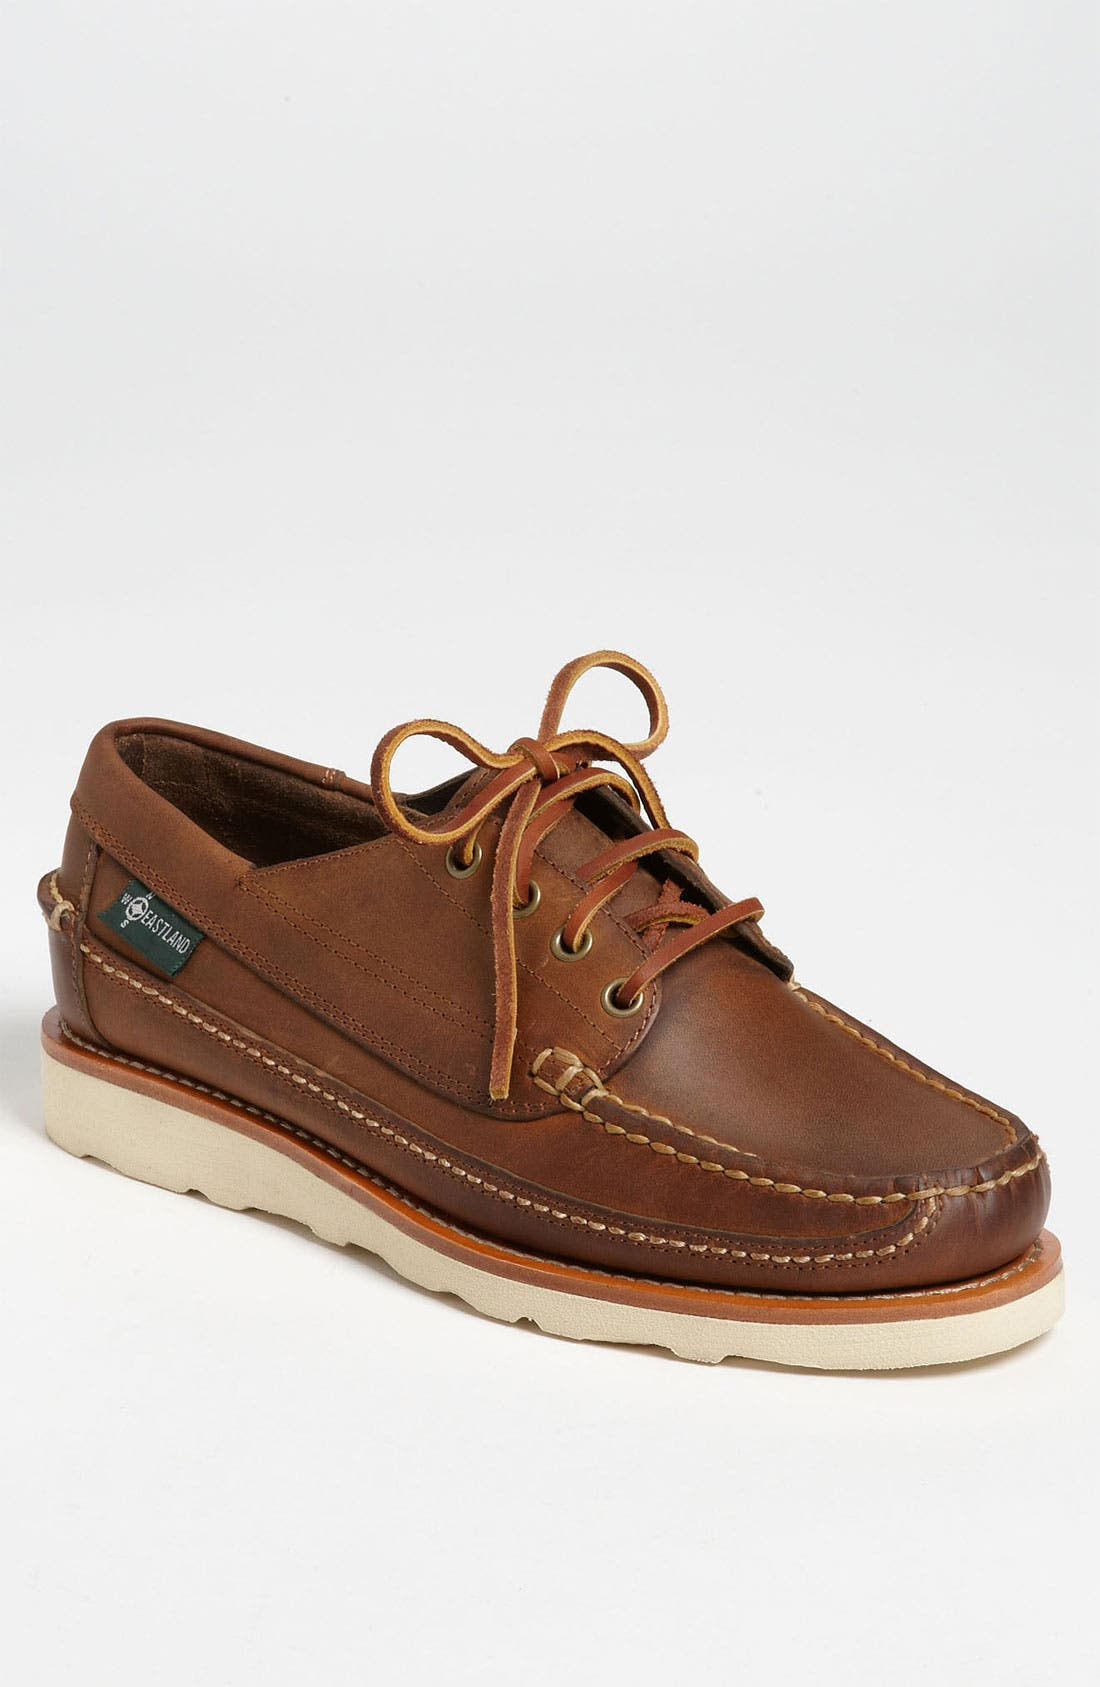 Alternate Image 1 Selected - Eastland 'Stoneham 1955' Boat Shoe (Online Only)